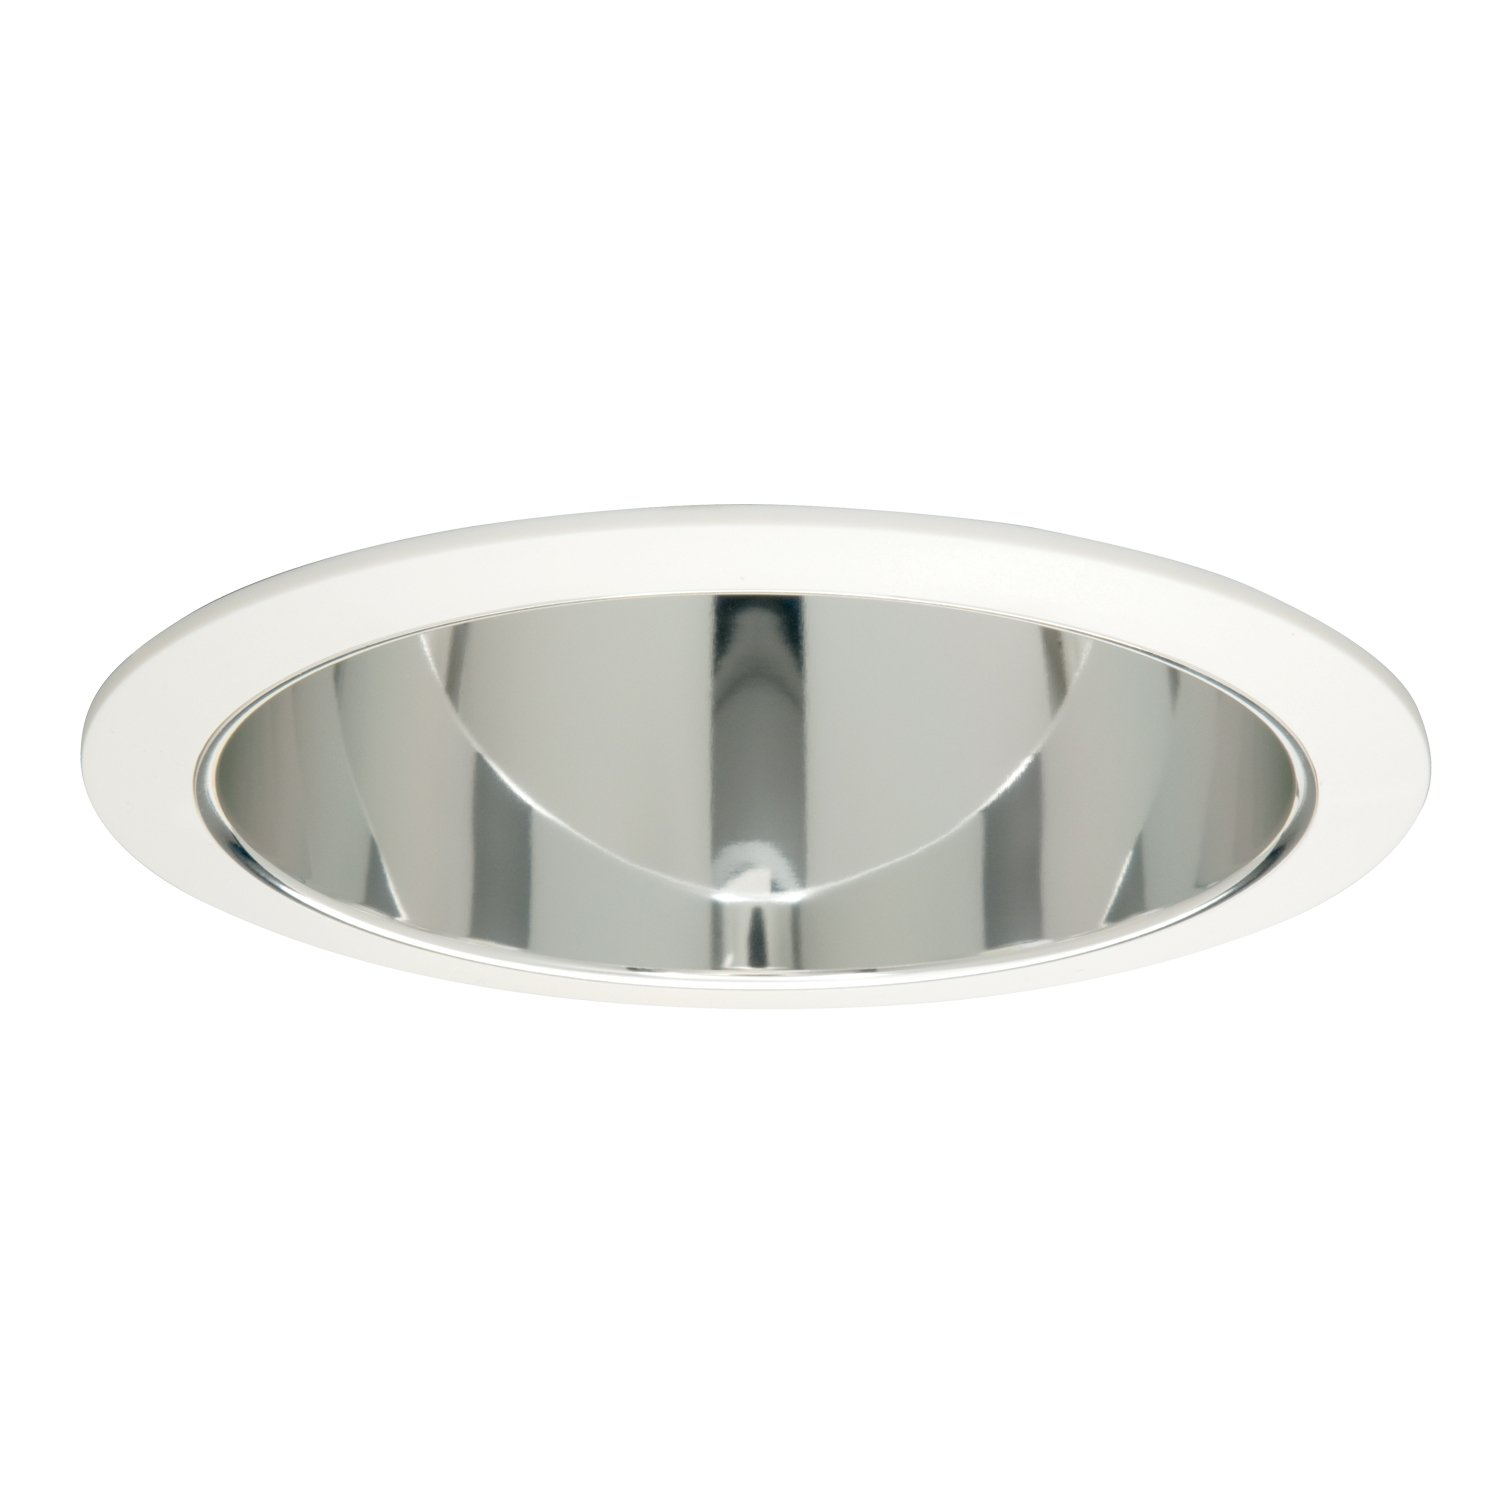 White Baffle with White Reflector EATON Lighting 406WWB 6-Inch Baffle Trim with Reflector